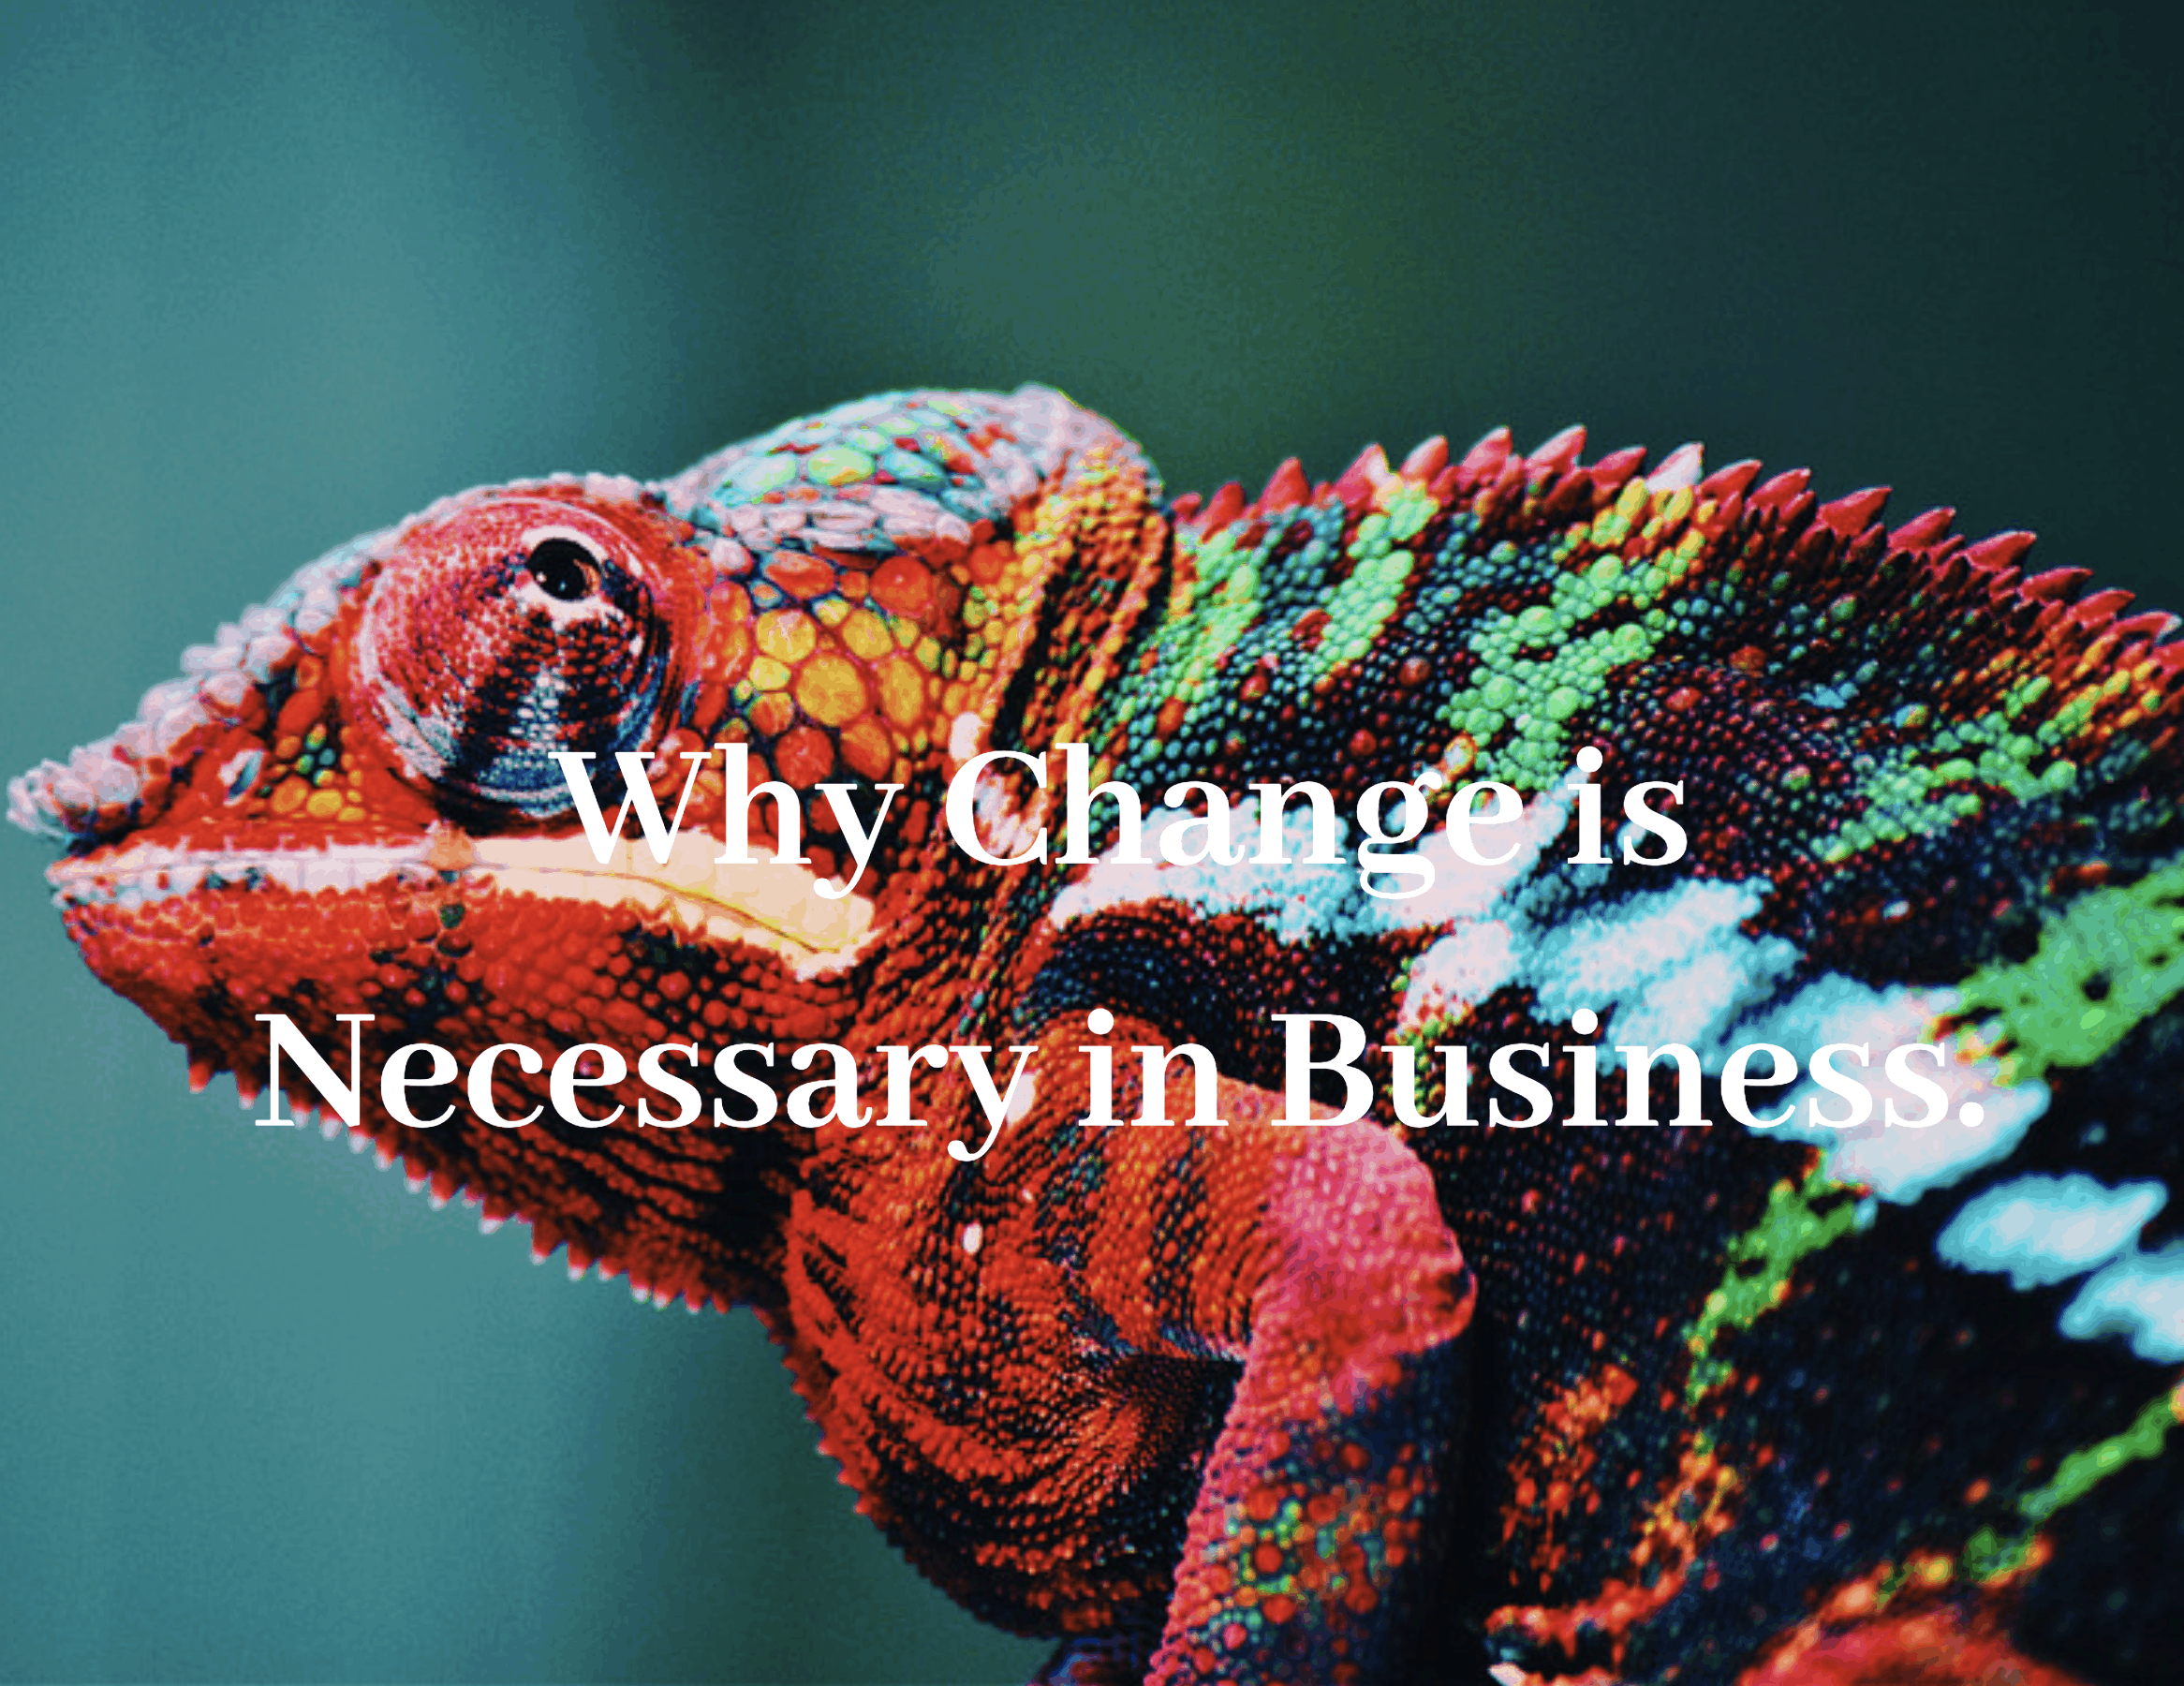 Cameleon that changes color, change is very important in business.